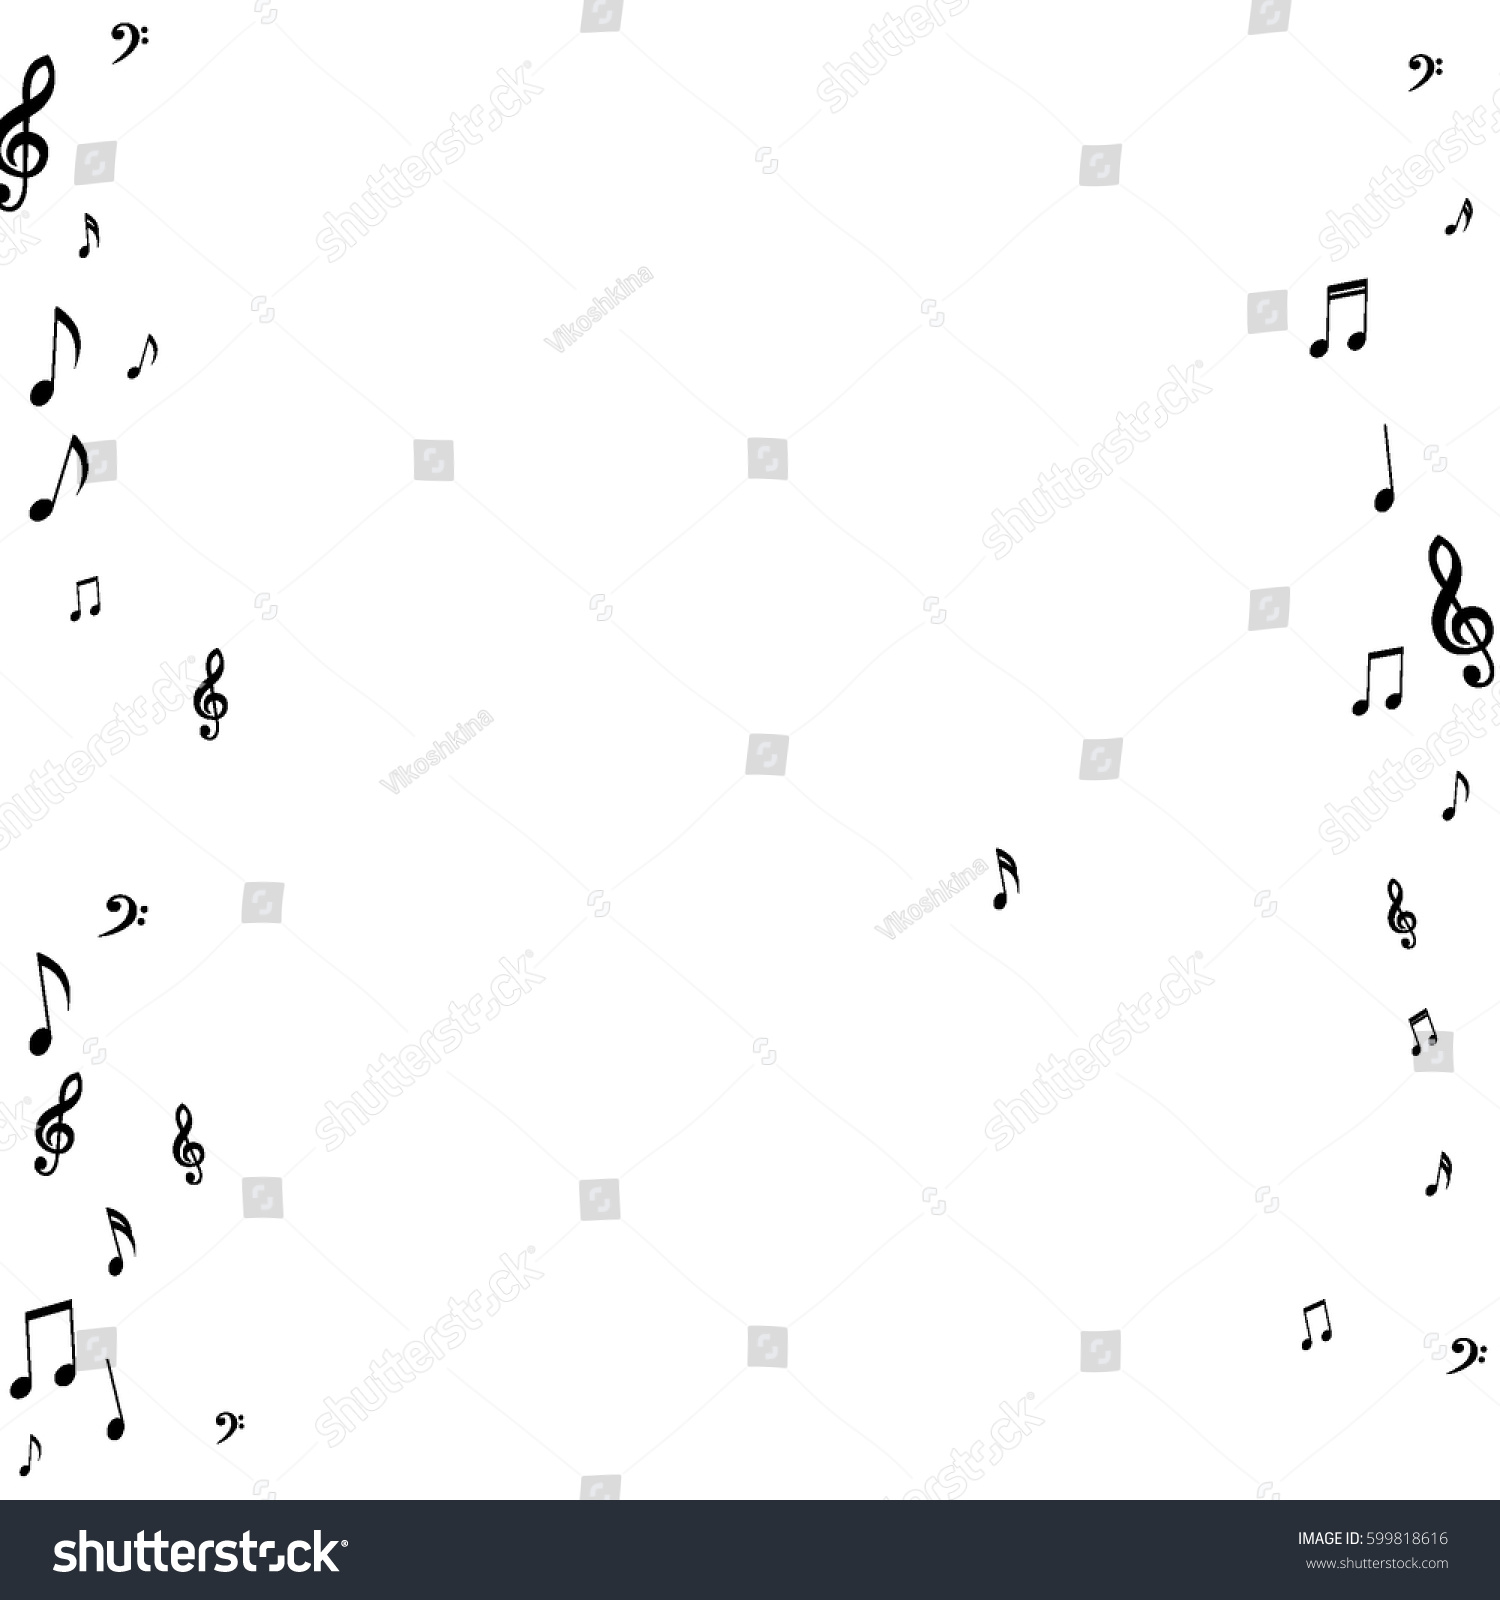 Square frame music notes treble bass stock vector 599818616 square frame of music notes treble and bass clefs black musical symbols on white background buycottarizona Choice Image